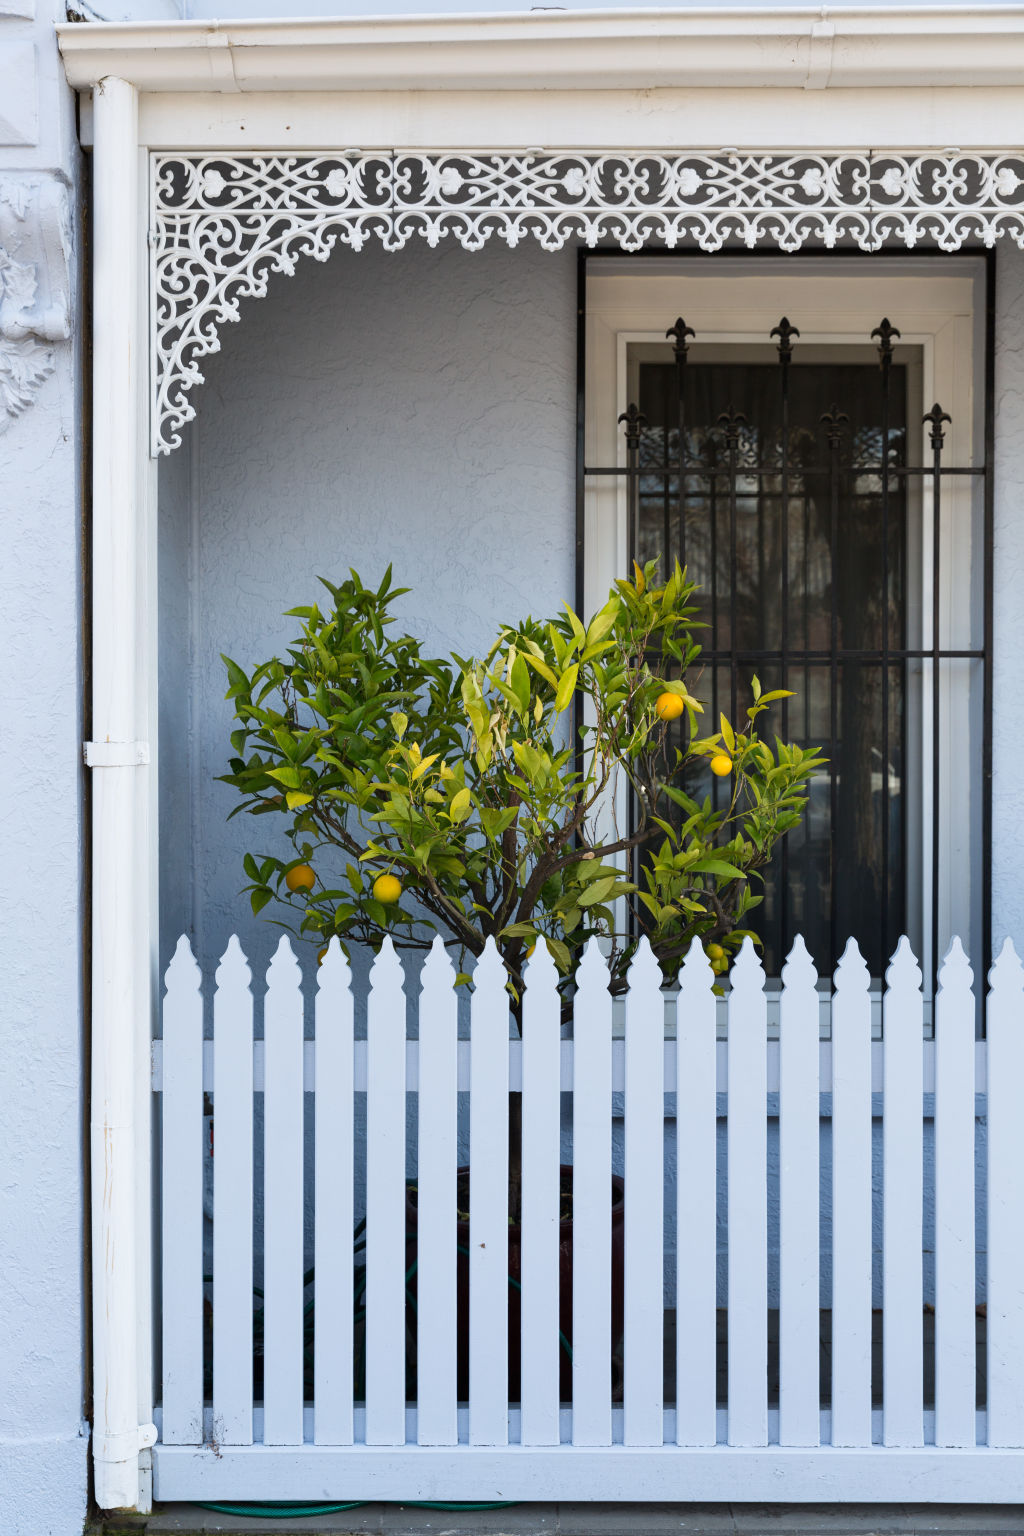 Domain_Neighbourhoods_North_Melbourne_July_2018_photos_Eliana_Schoulal-8882_bvdfow